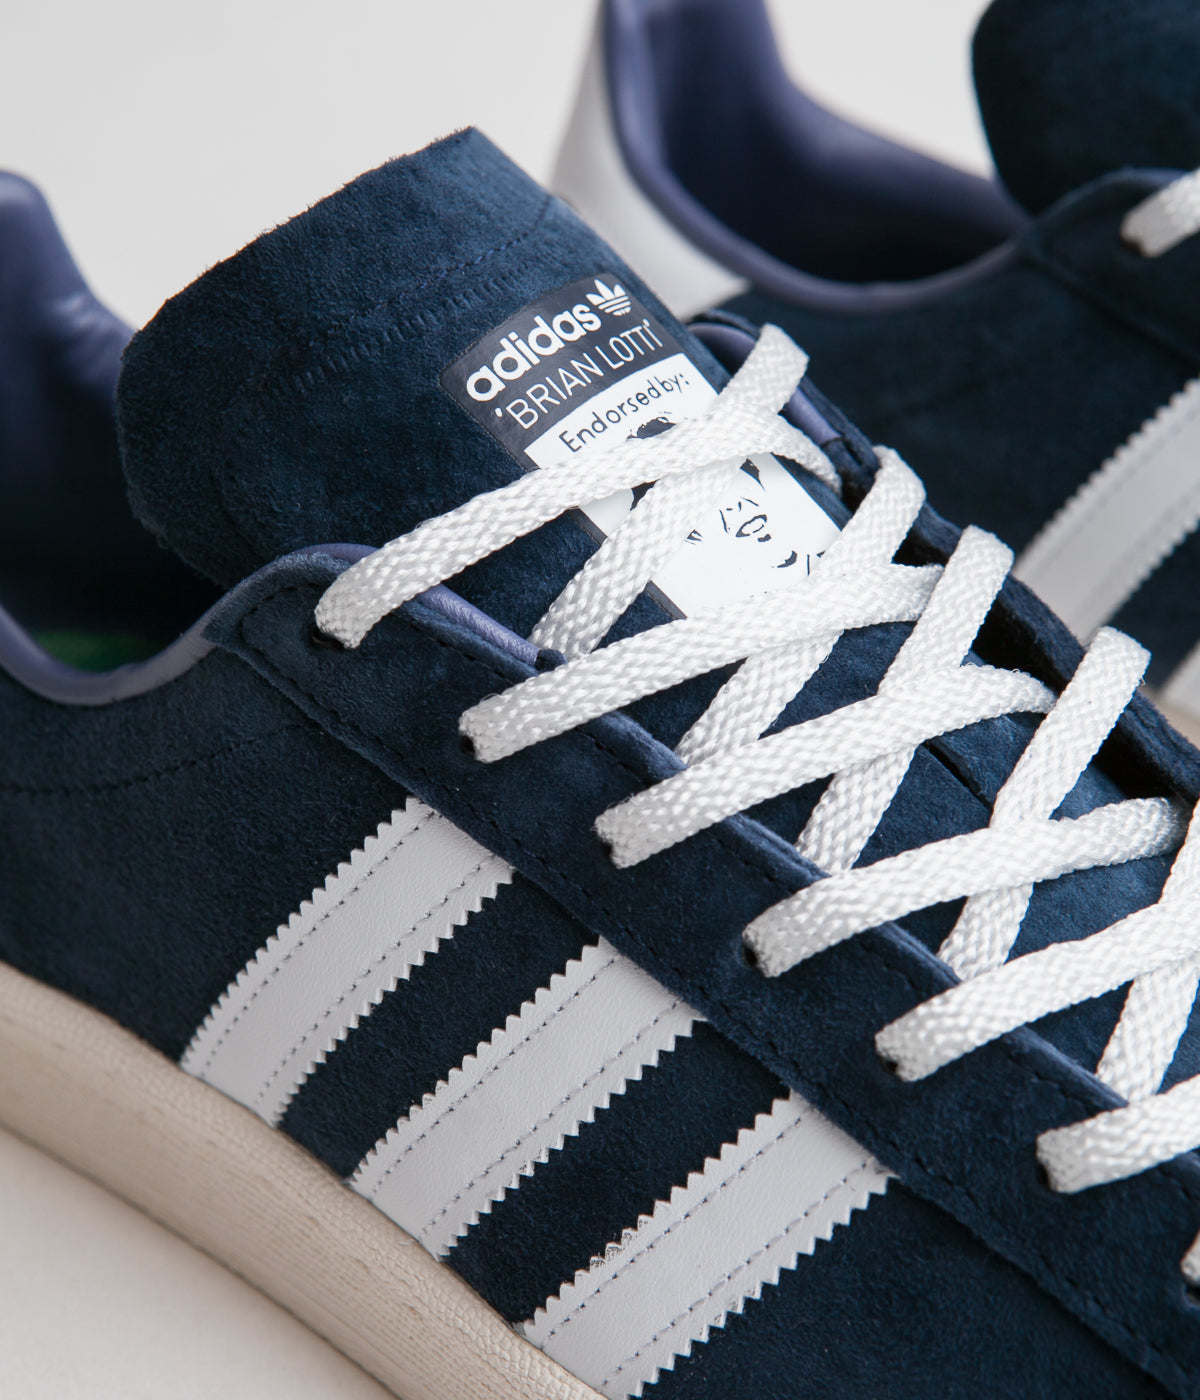 Adidas x Brian Lotti Campus 80's 'Respect Your Roots' Shoes - Collegiate Navy / FTW White / Core White